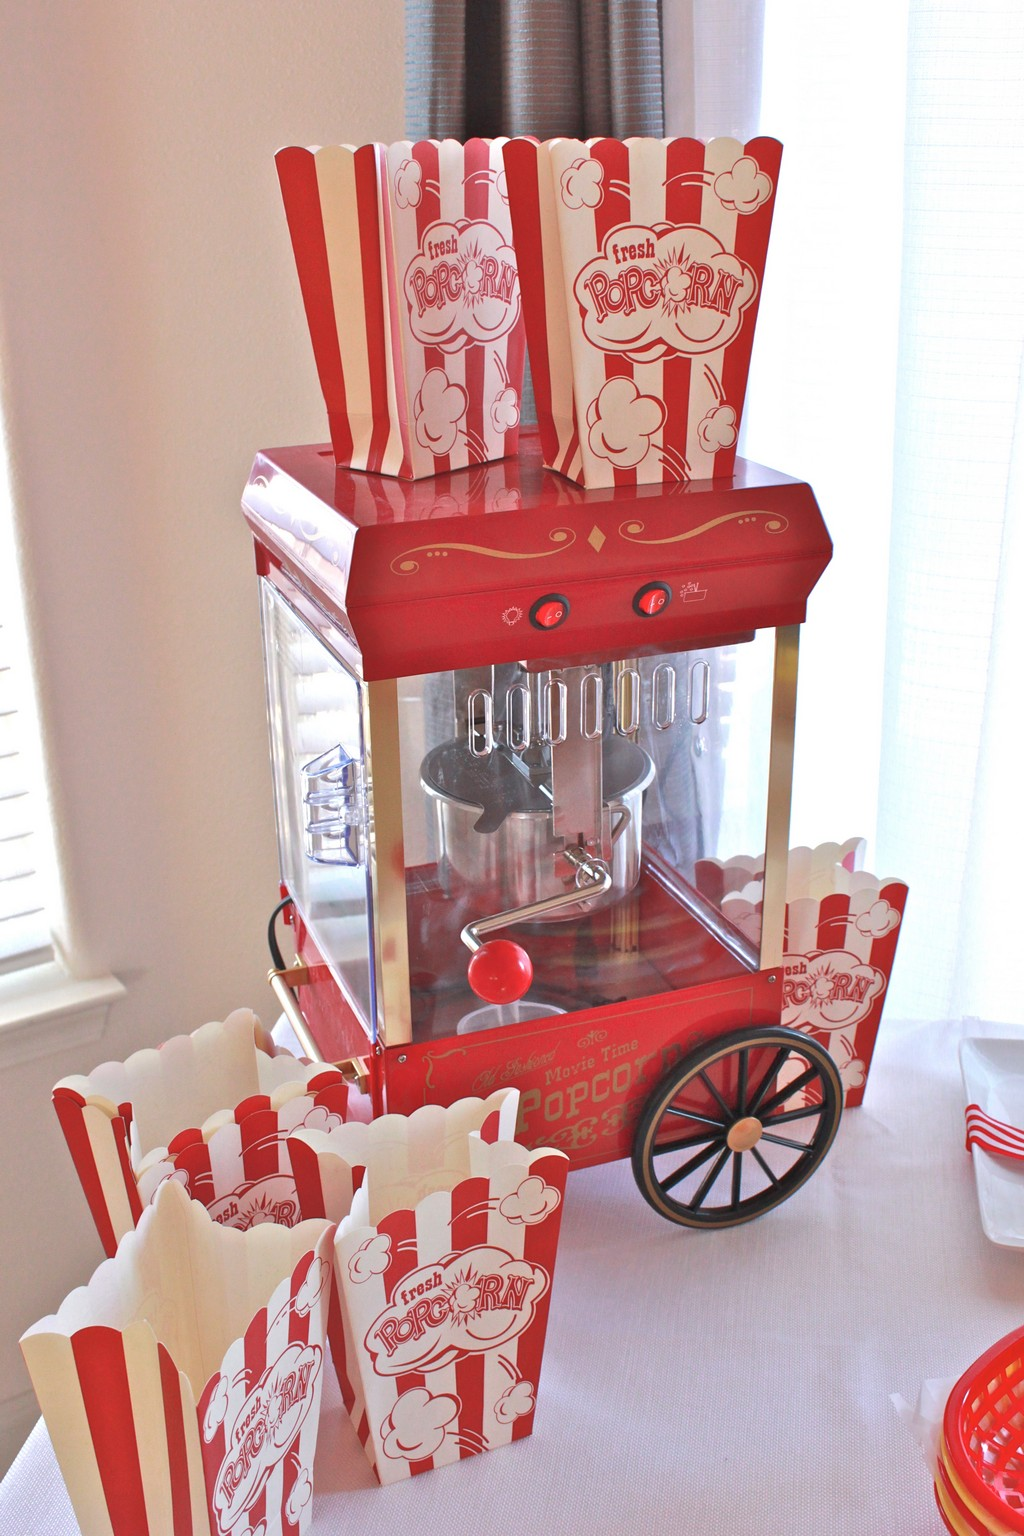 old fashioned popcorn maker, popcorn machine, popcorn machine uk